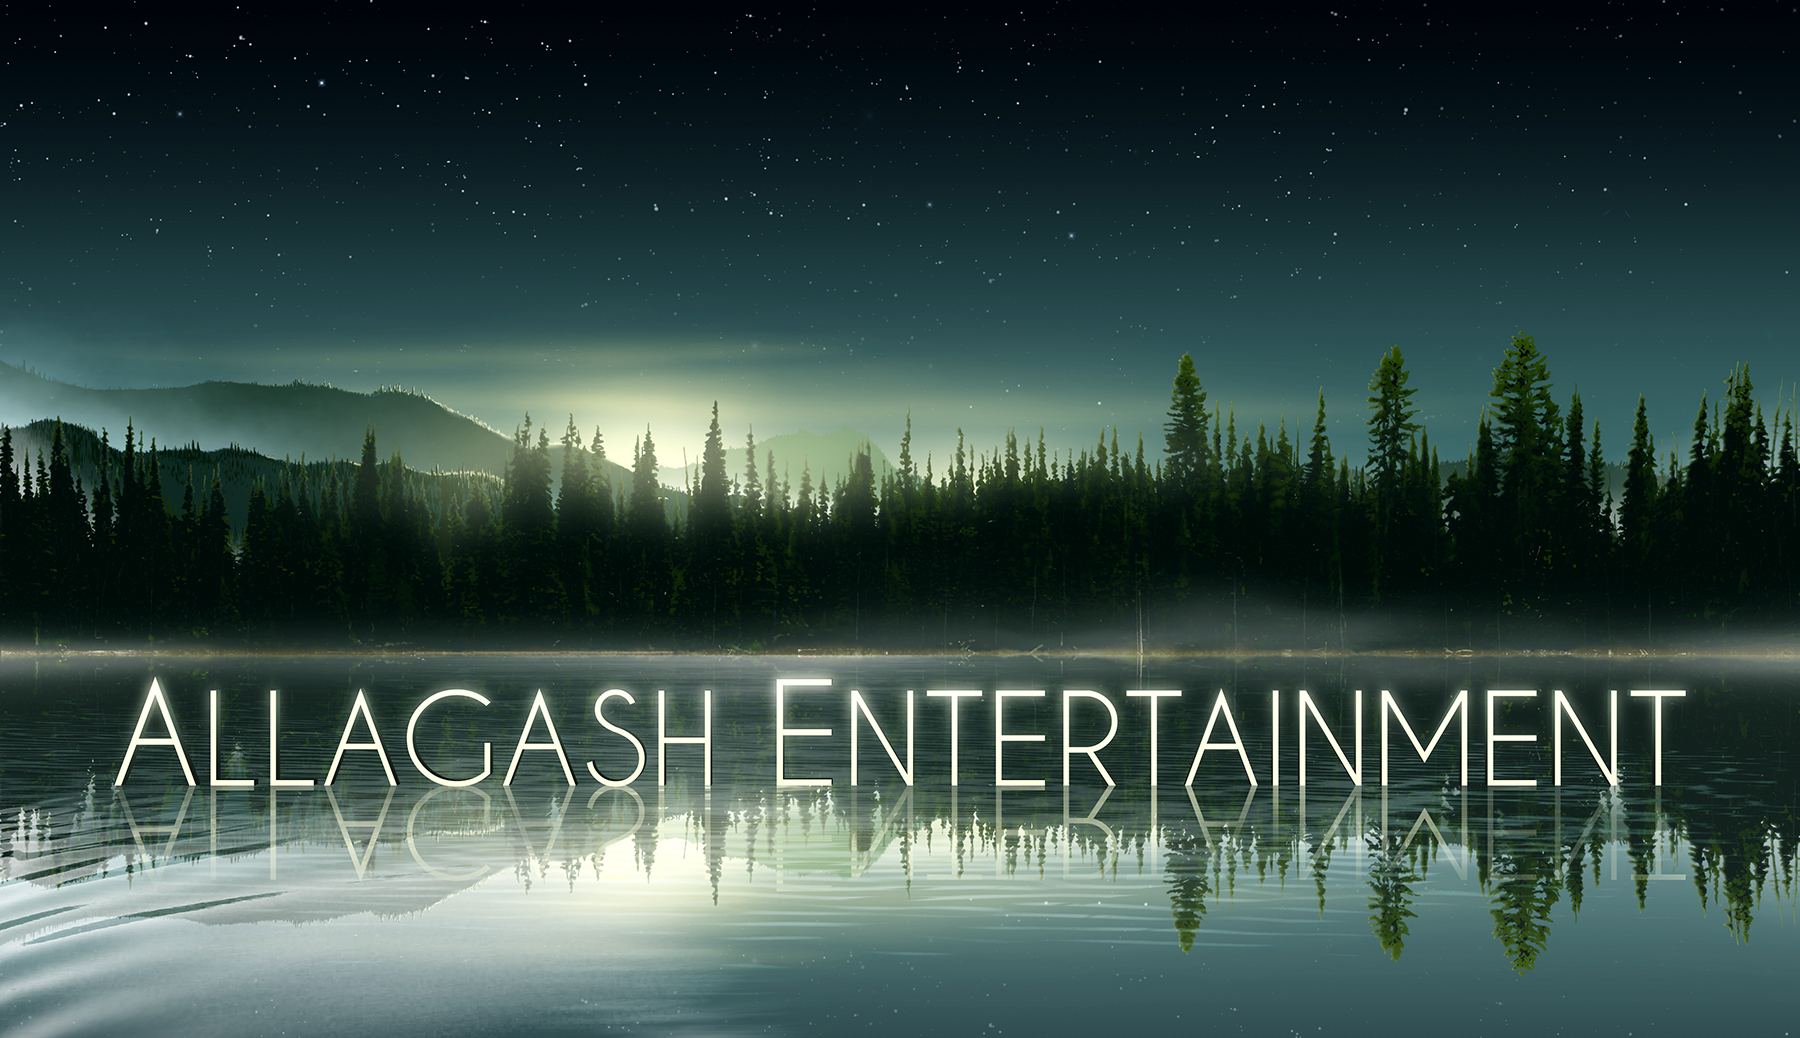 Allagash Entertainment logo